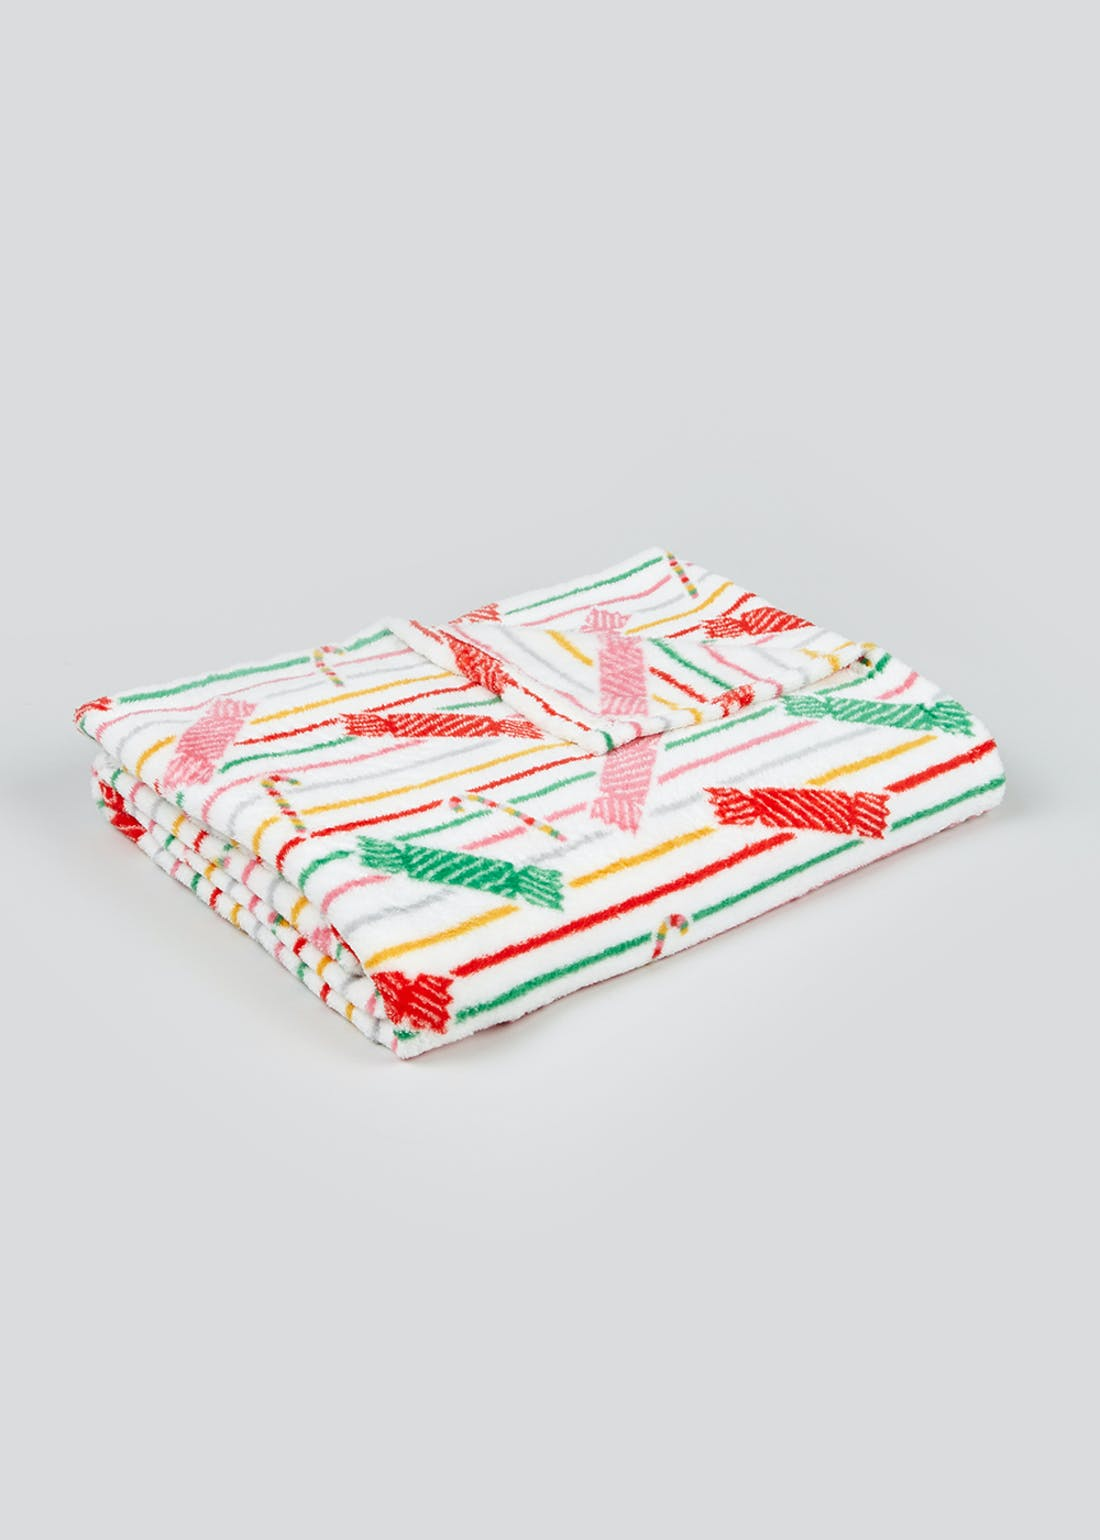 Kids Christmas Candy Stripe Fleece Throw Blanket (150cm x 130cm)